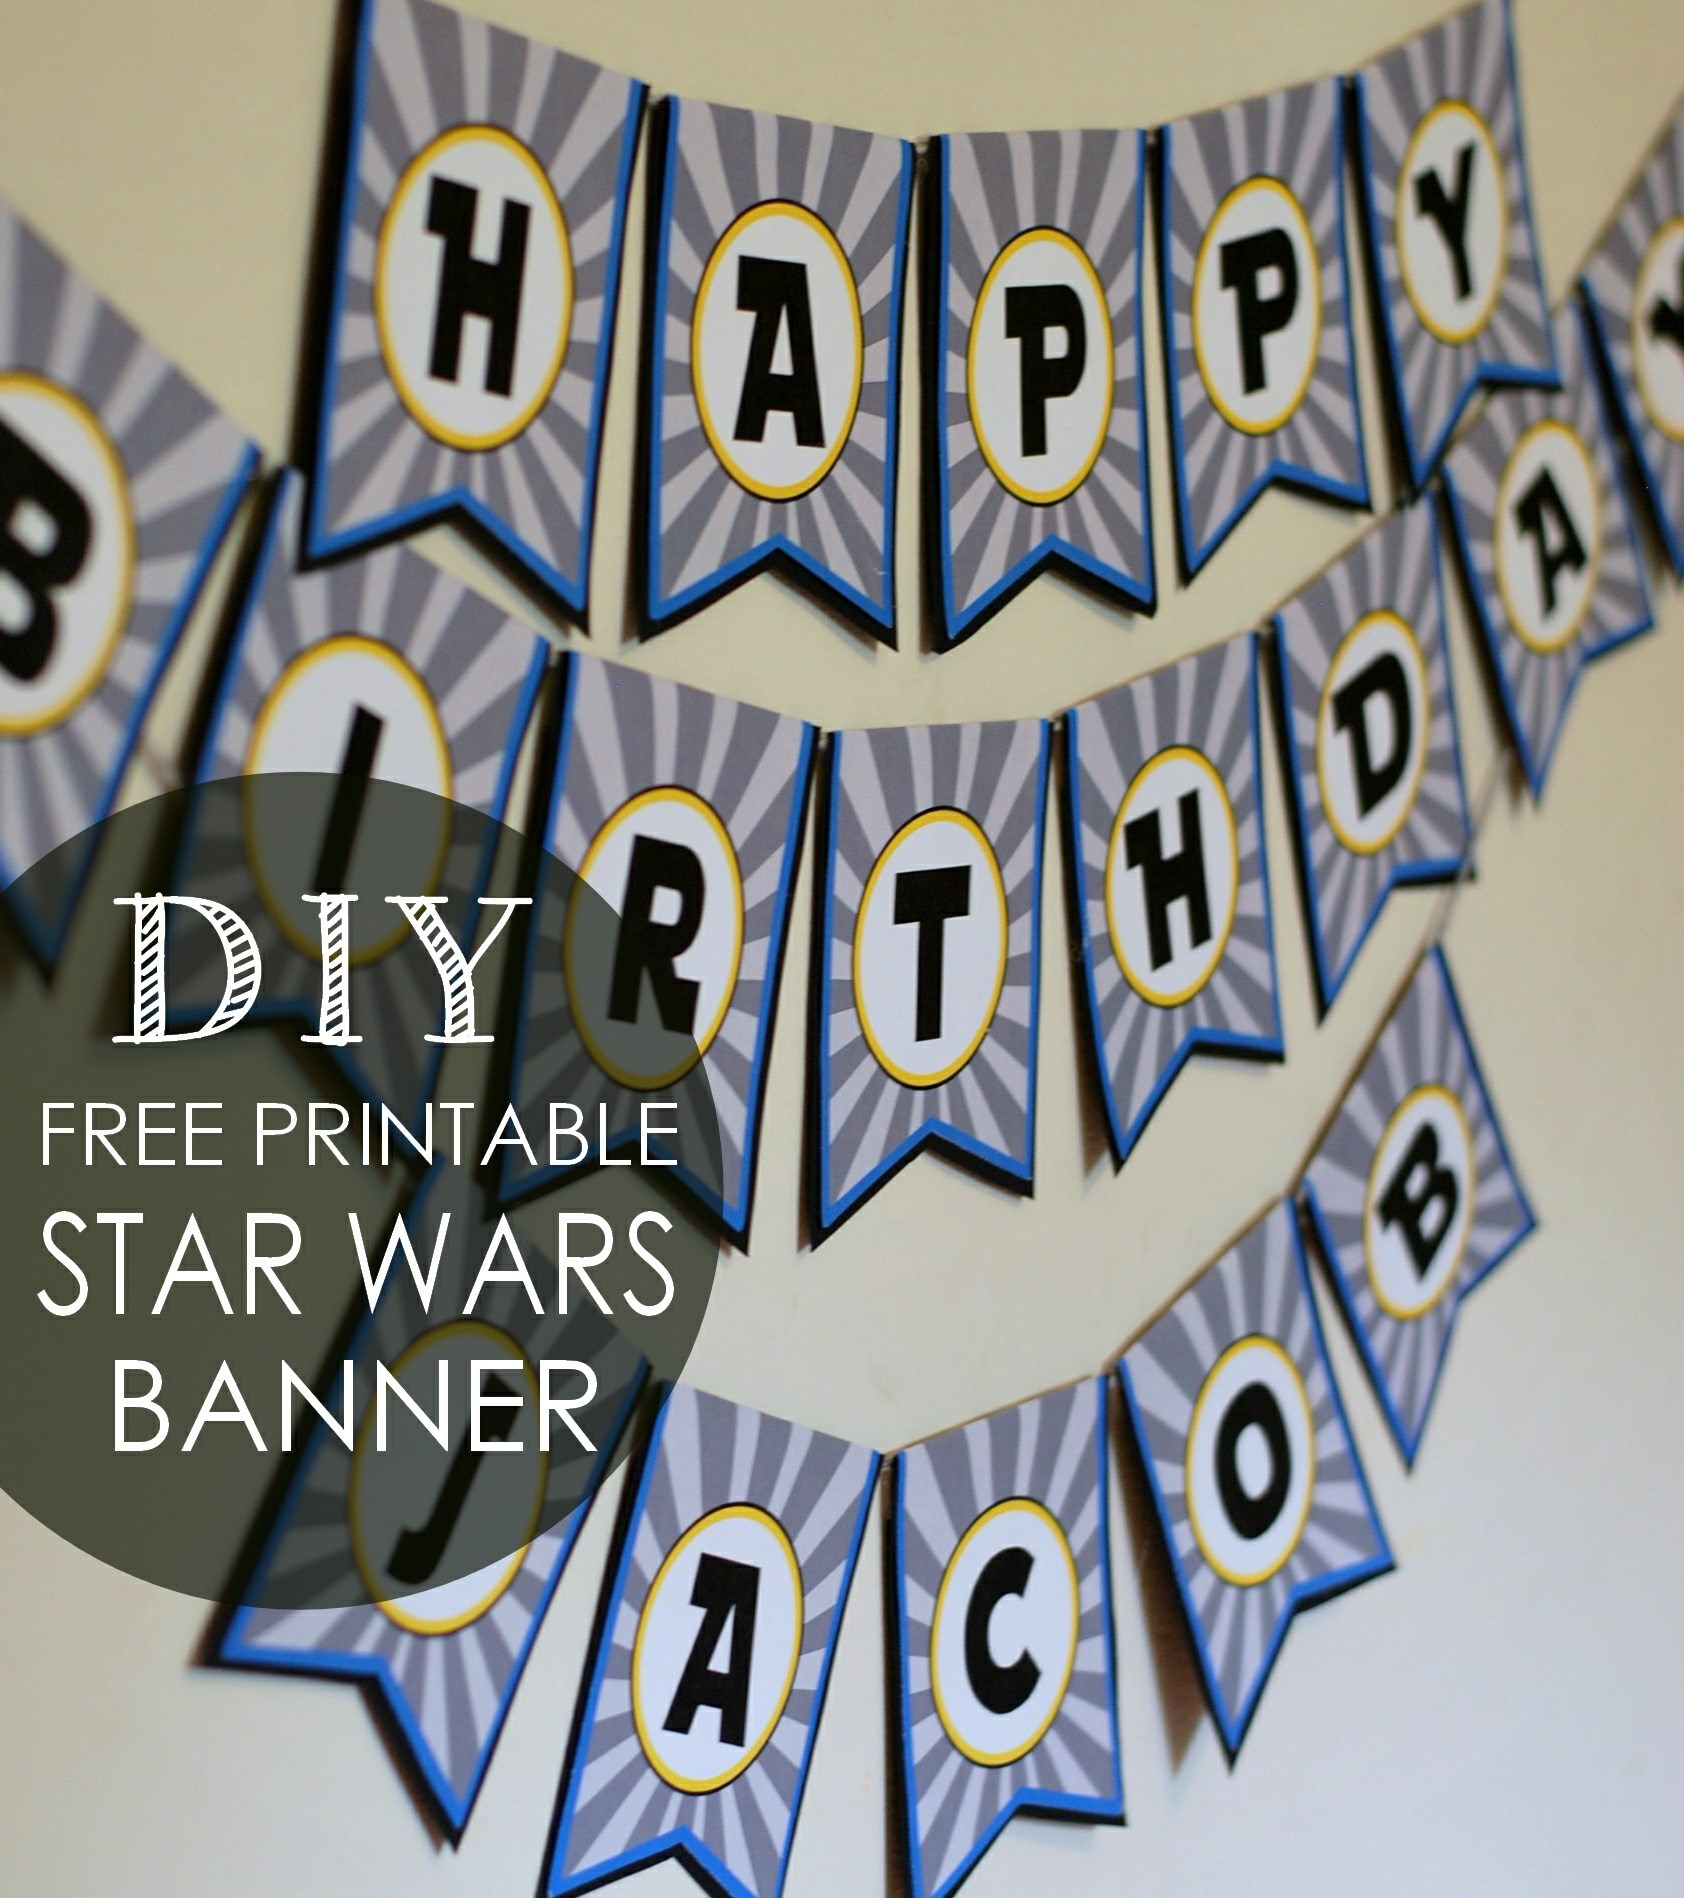 Diy Star Wars Birthday Banner + Free Printables | Posh Tart - Diy Birthday Banner Free Printable